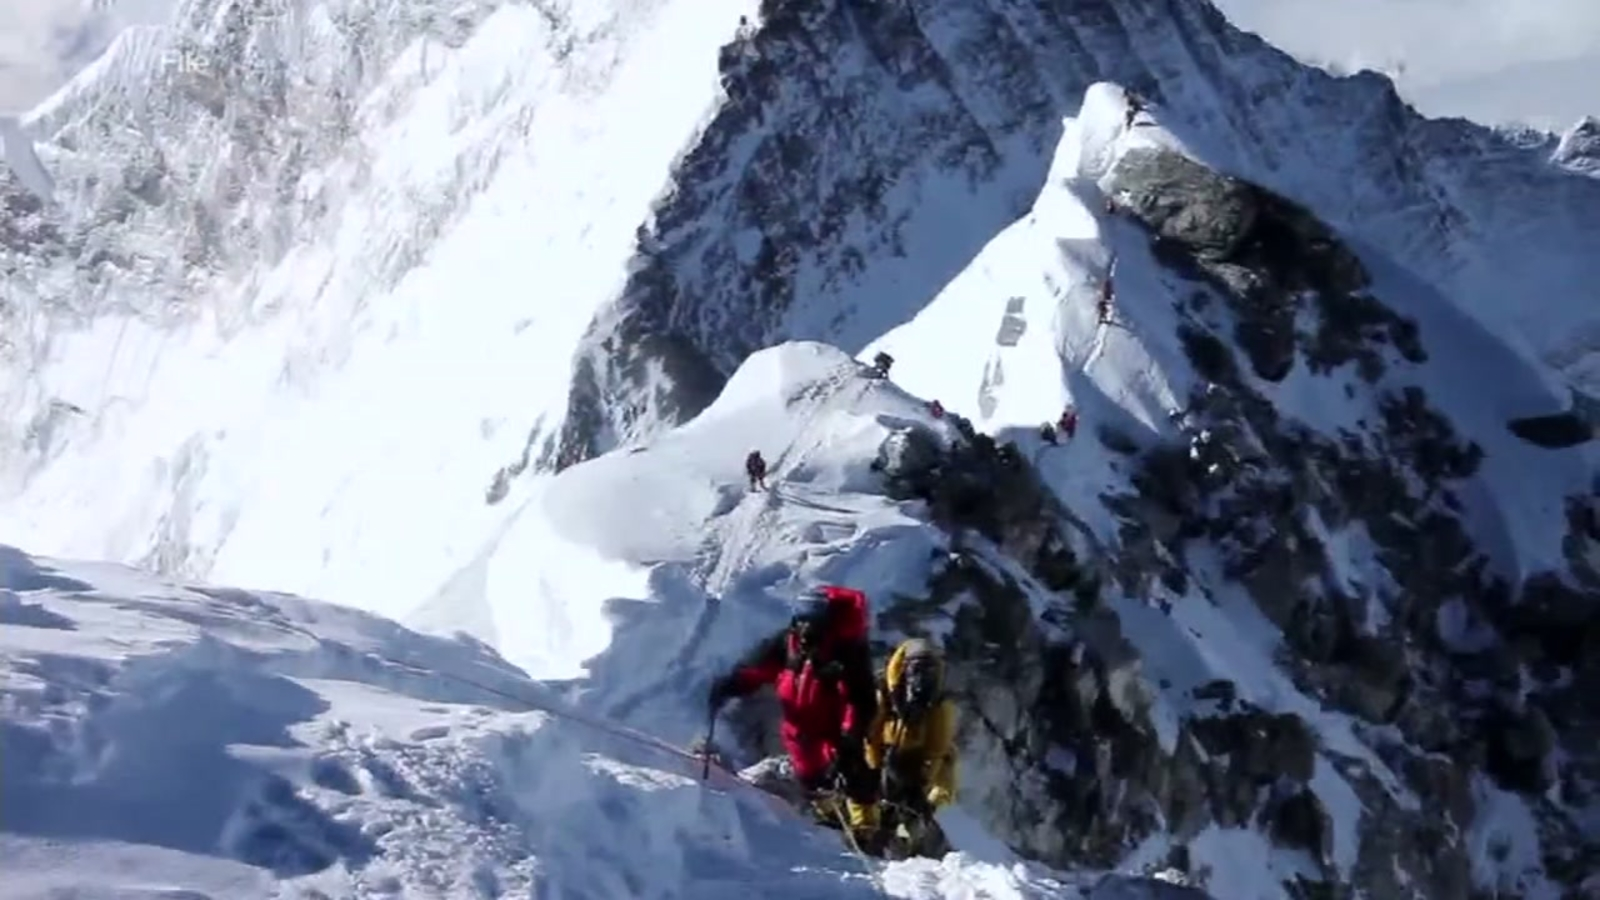 Bay Area mountain climber reacts to 11 climber deaths on Everest